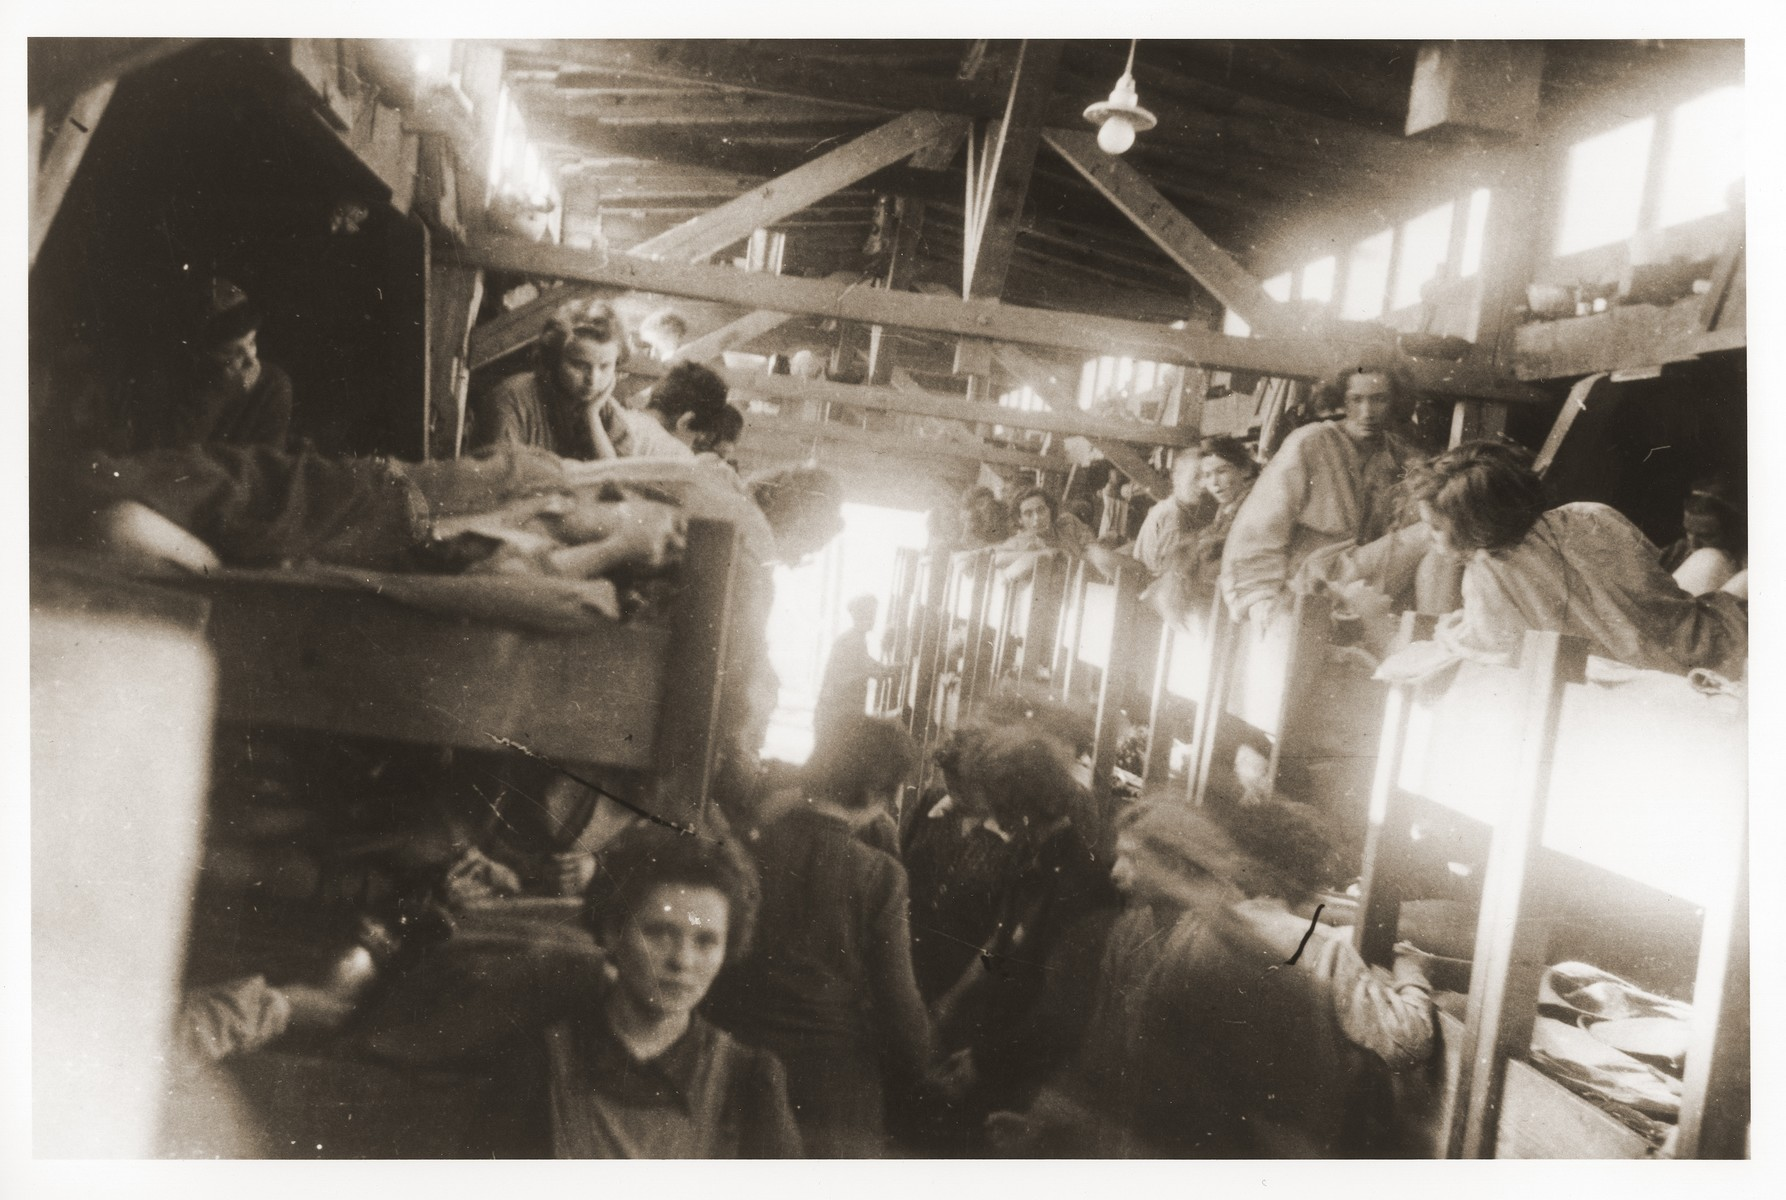 Survivors in the women's barracks at the newly liberated lower camp of Mauthausen.